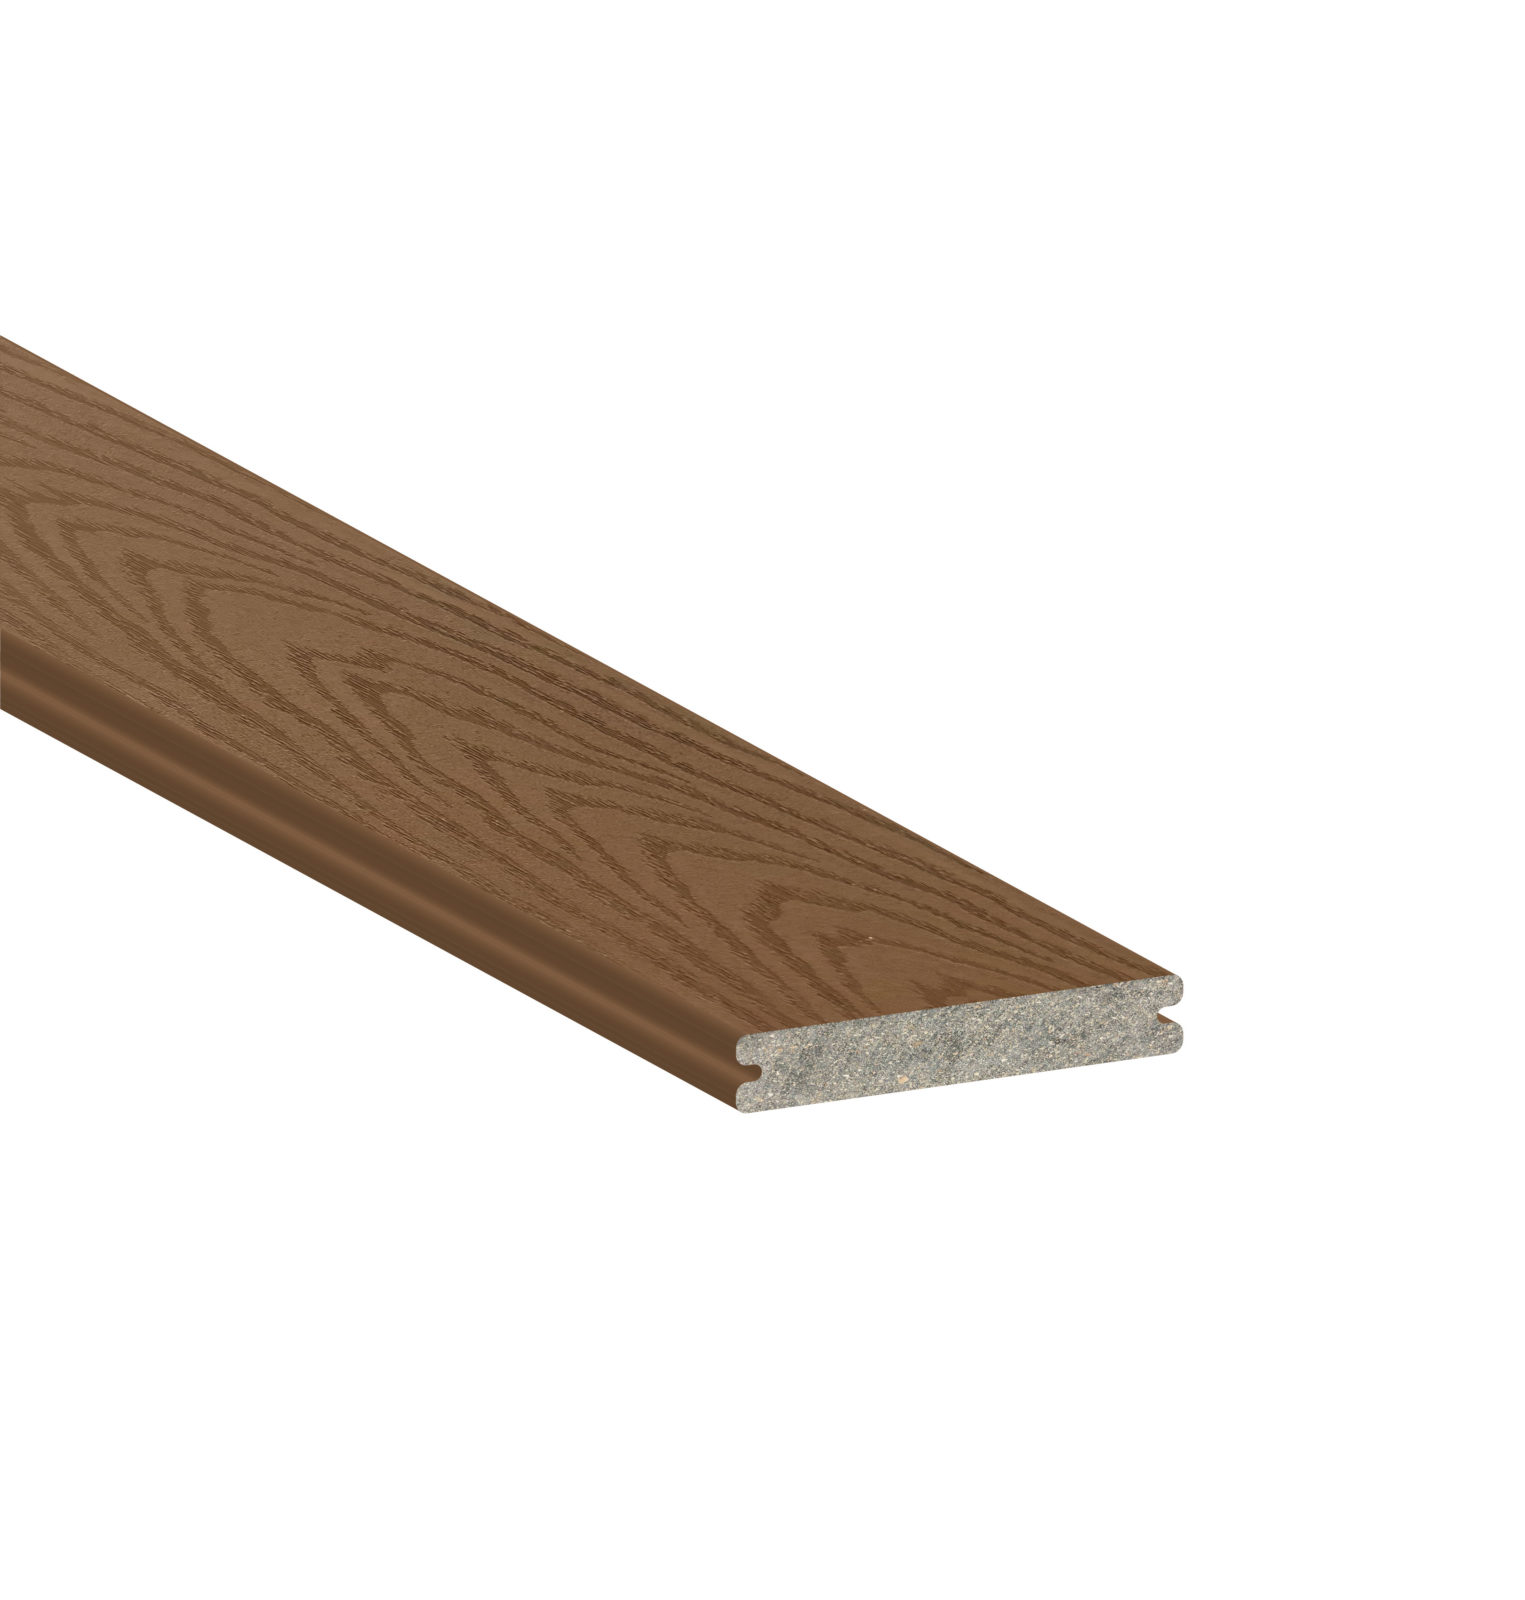 Trex select saddle grooved 16 39 schillings for Capped composite decking prices